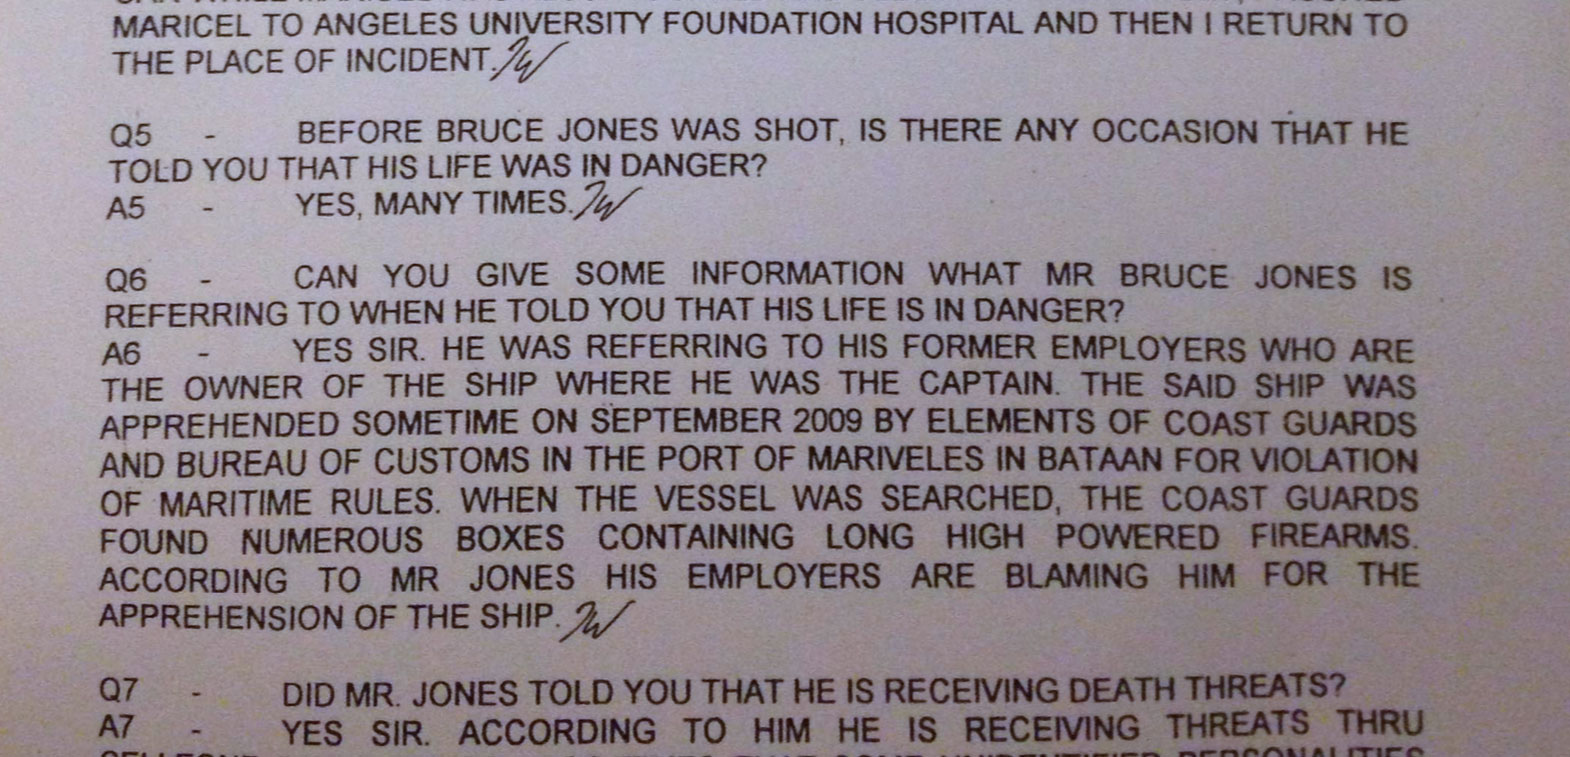 Transcript of John Nash's interview with the police after Bruce Jones's murder.